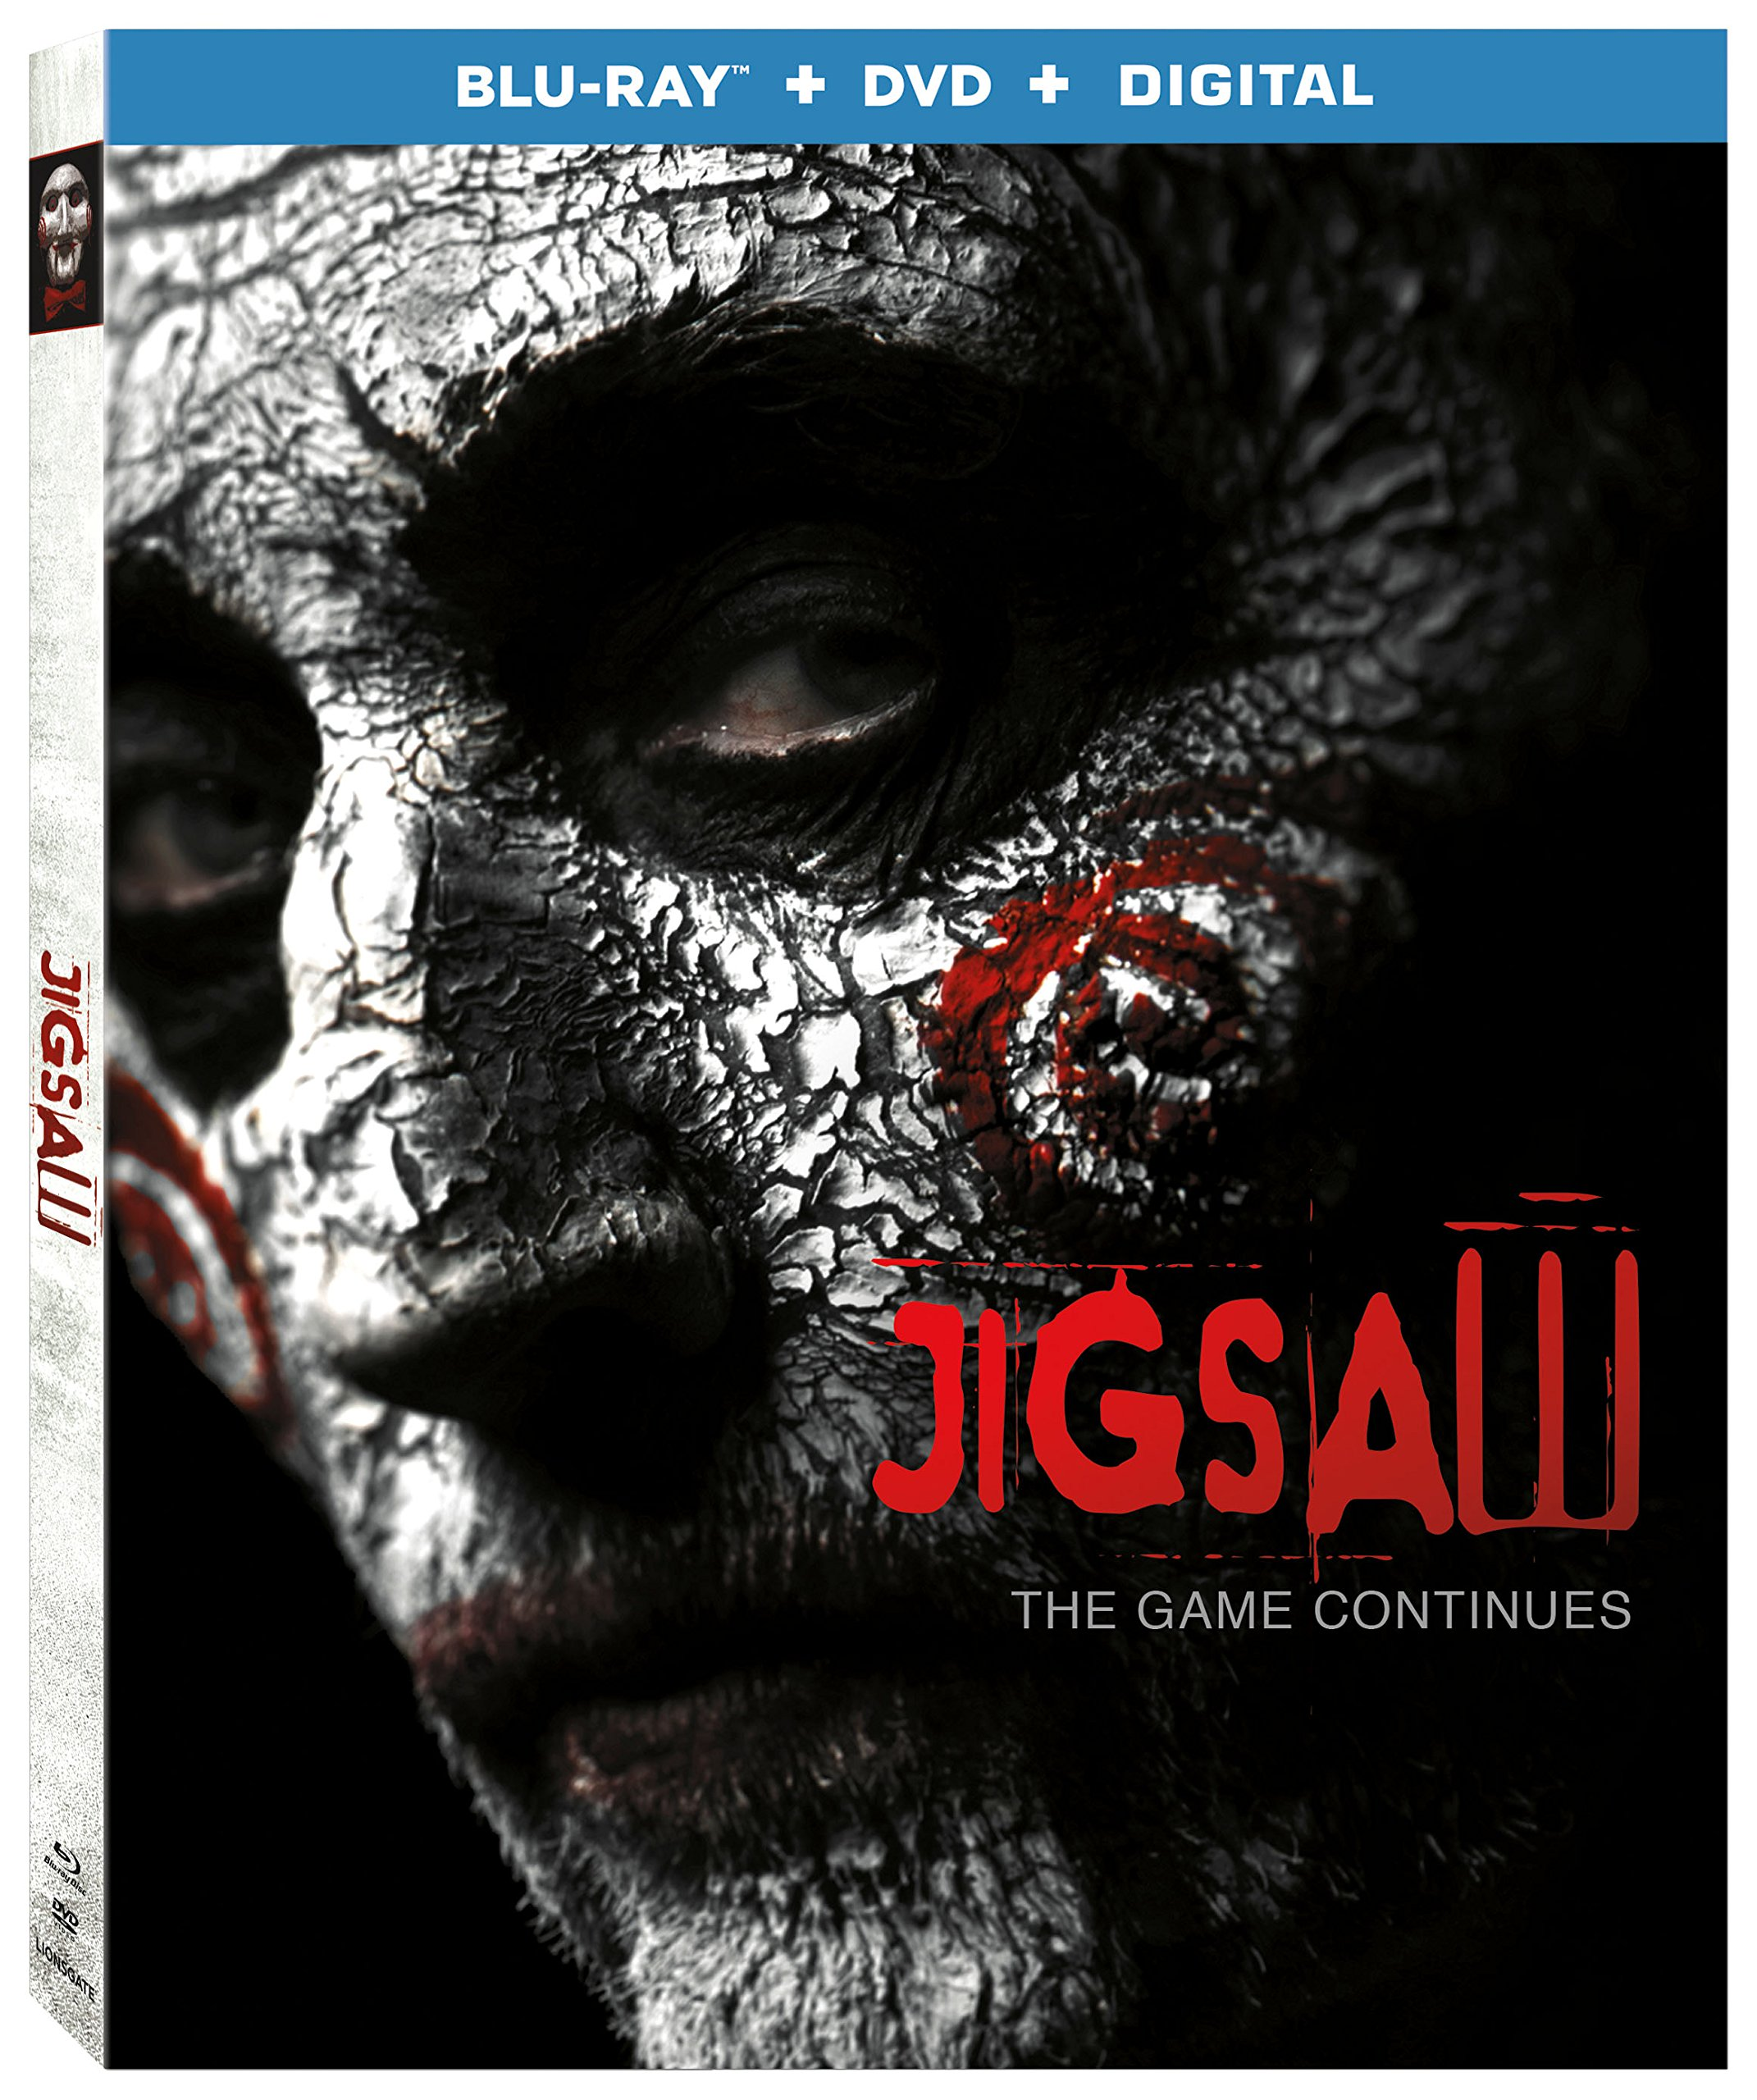 Blu-ray : Jigsaw (With DVD, Ultraviolet Digital Copy, 2 Pack, Widescreen, 2 Disc)